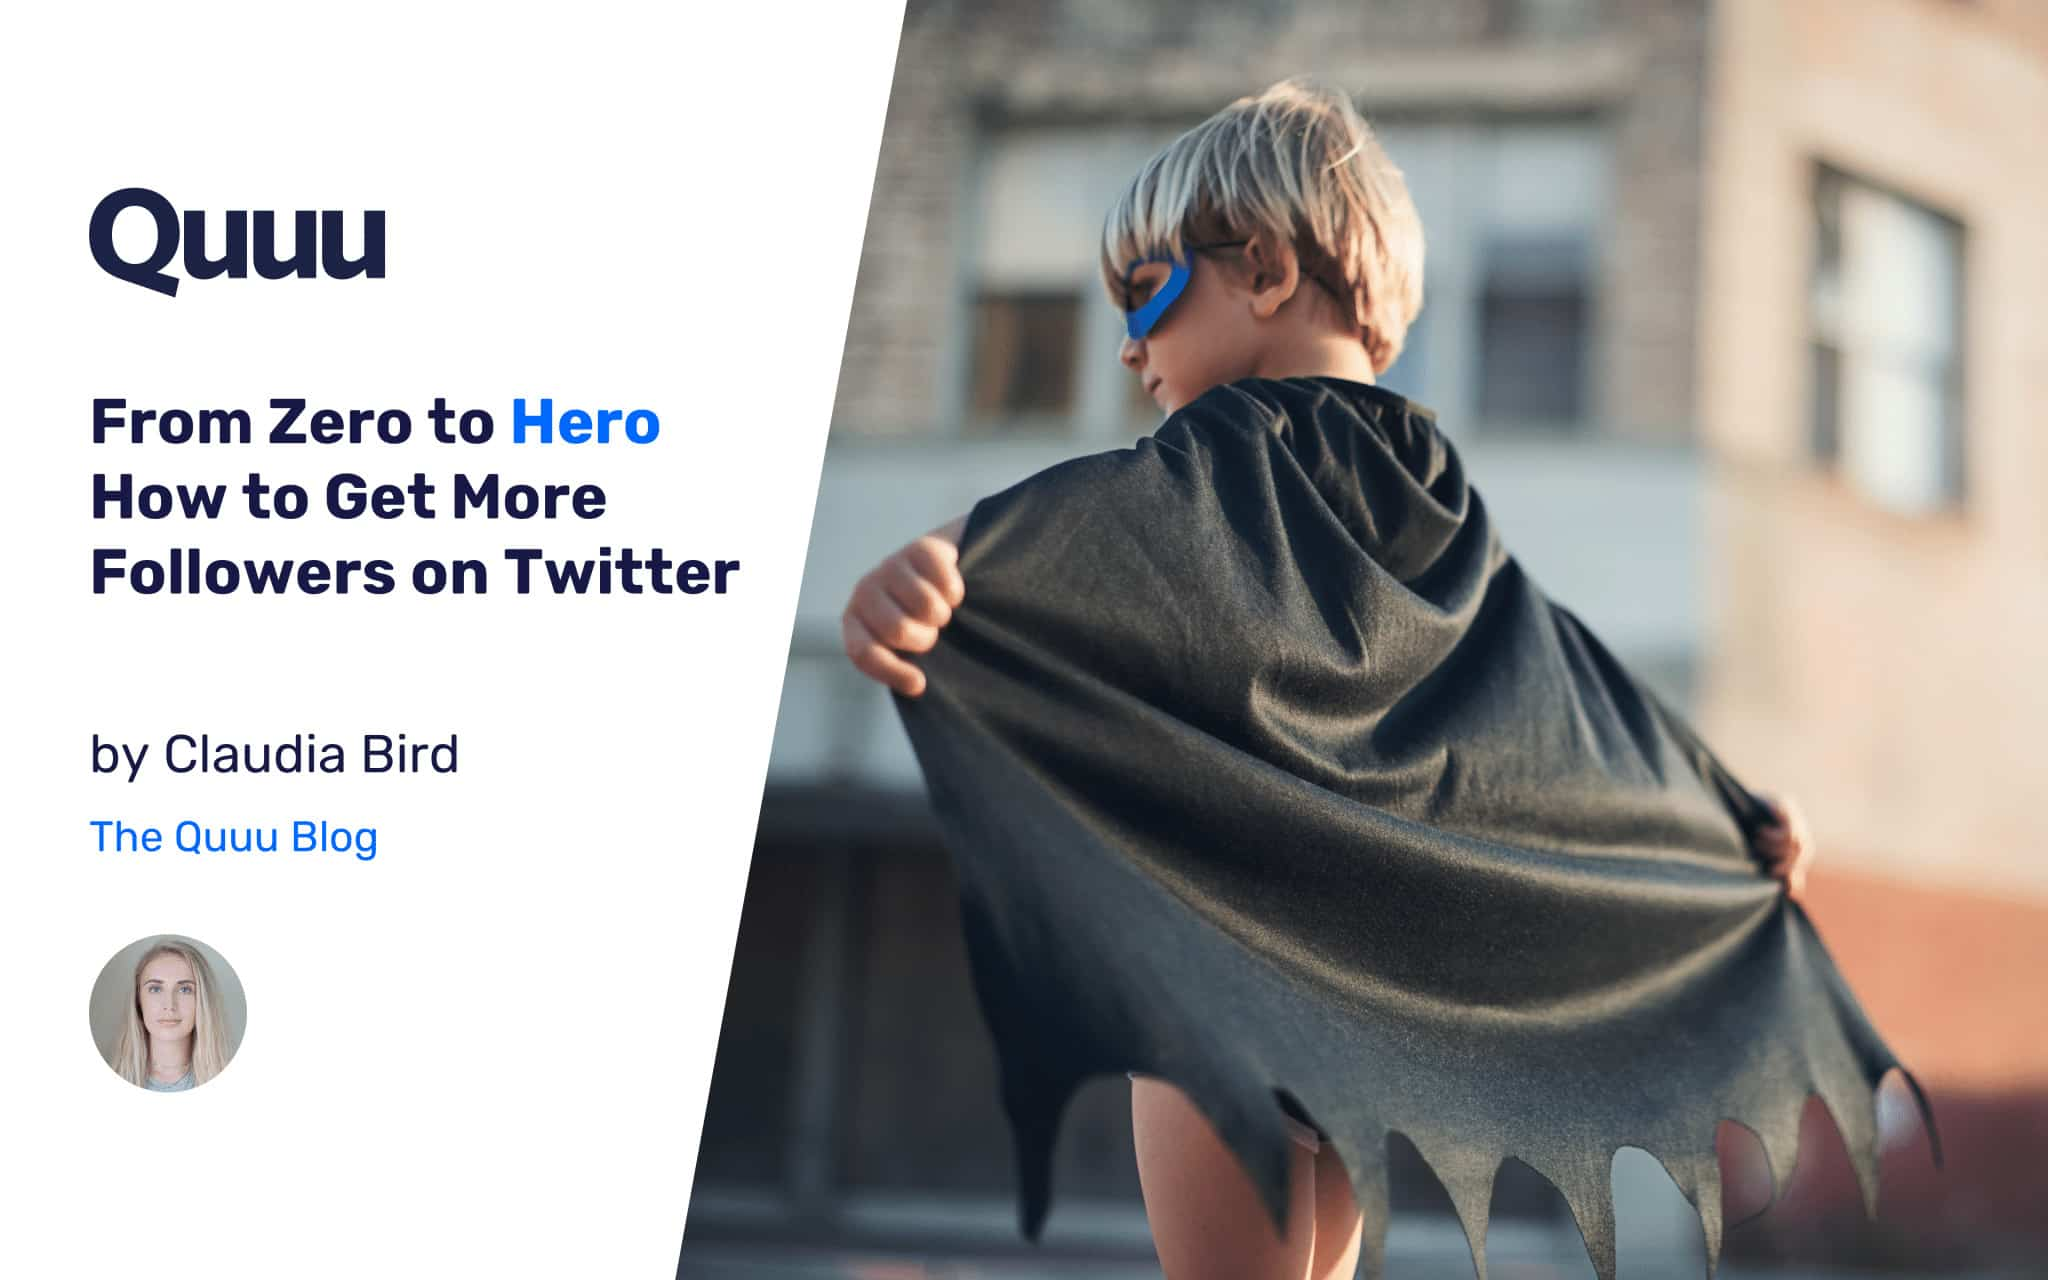 How to Get More Followers on Twitter - From zero to hero